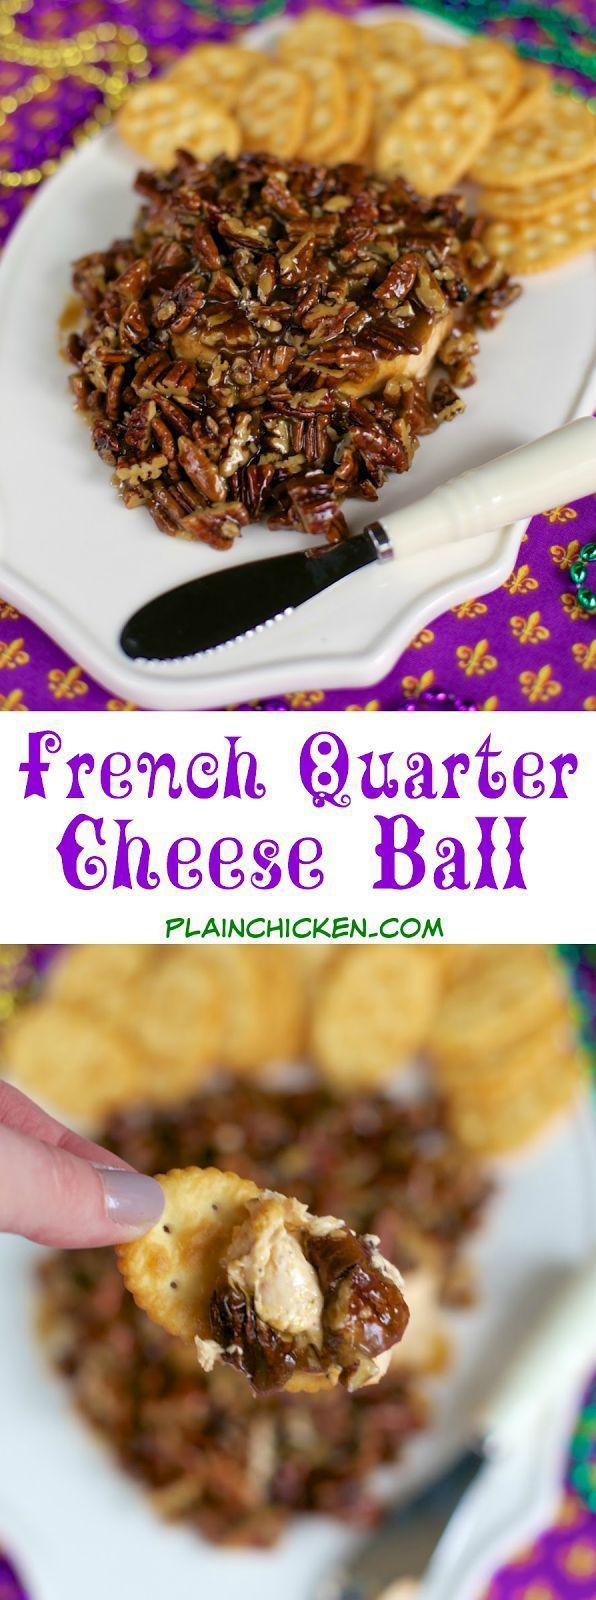 French Quarter Cheese Ball - sweet and savory in every bite! Quick cajun cheese ball topped with an easy praline topping. This is THE BEST! I took it to a party and it was gone in a flash! Everyone asks for the recipe! Perfect for Mardi Gras! #cajuncooking